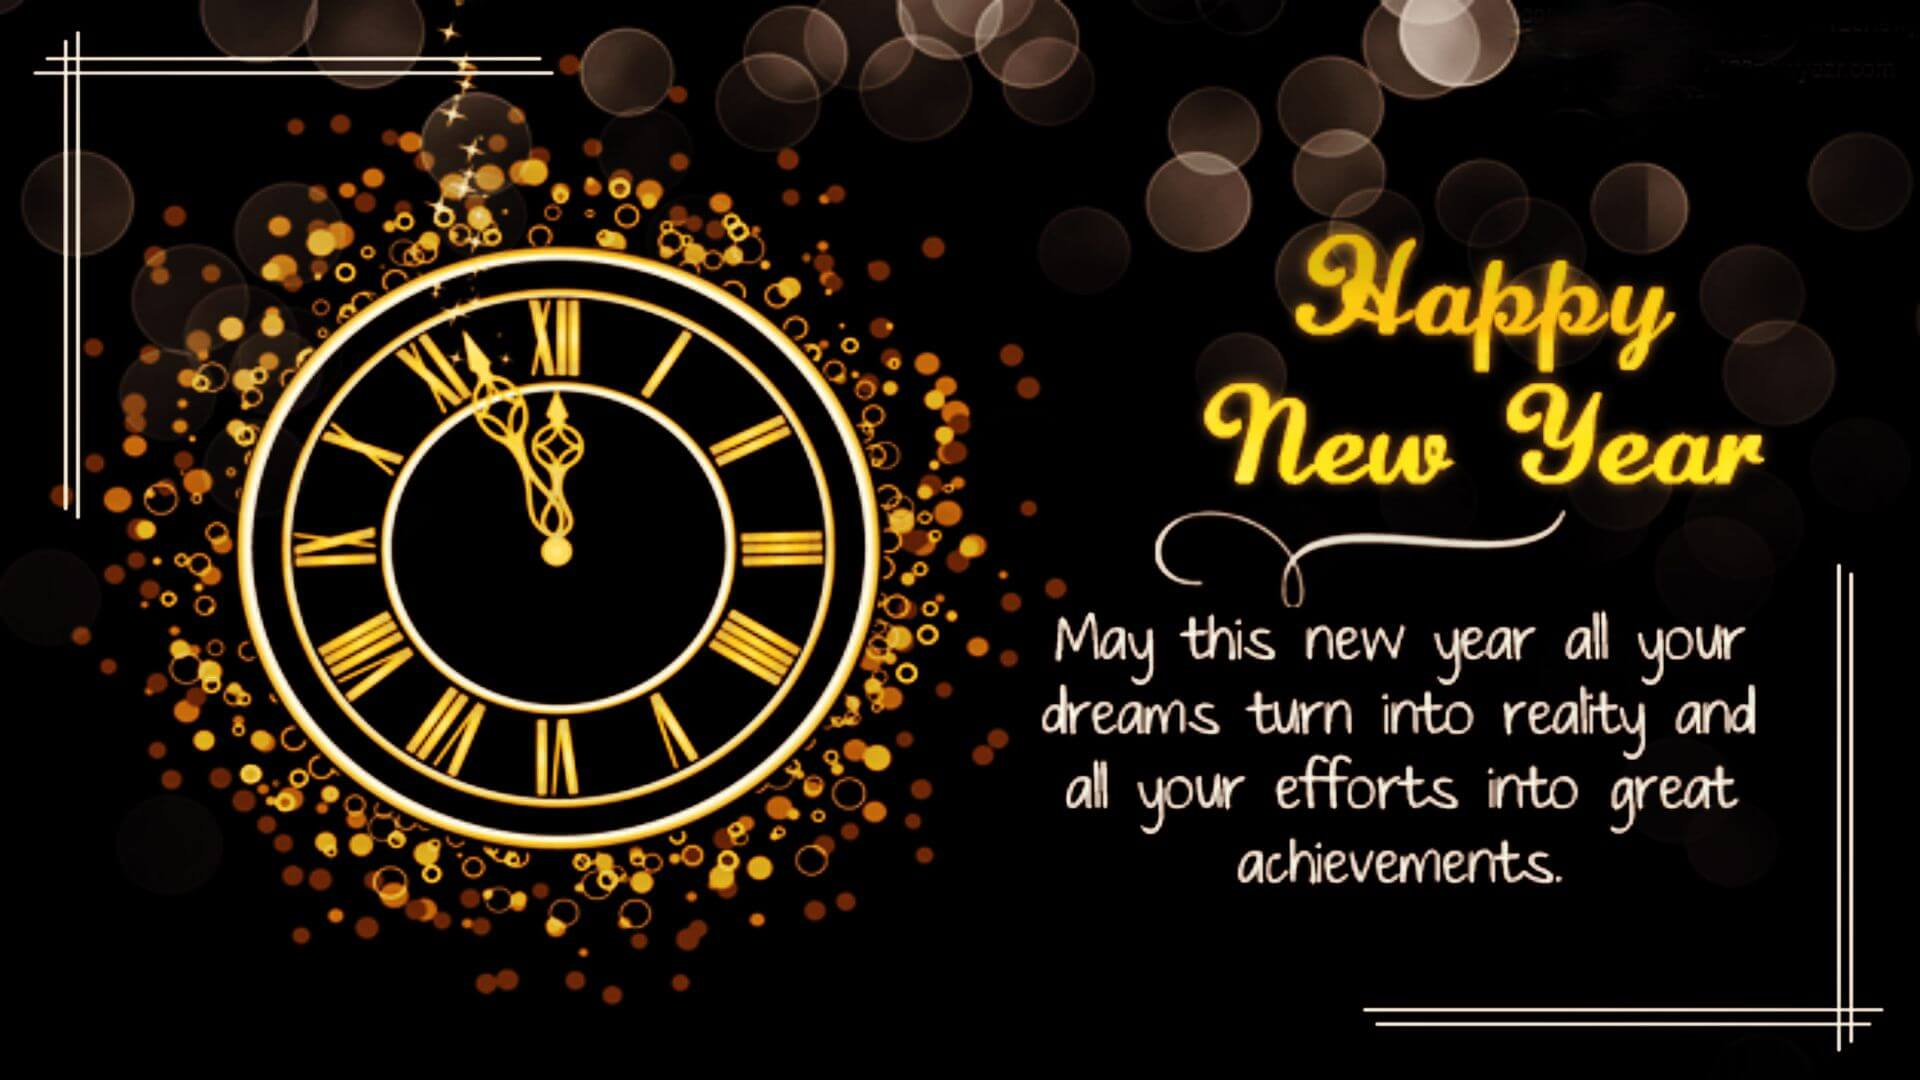 Happy New Year Quotes 2019 8